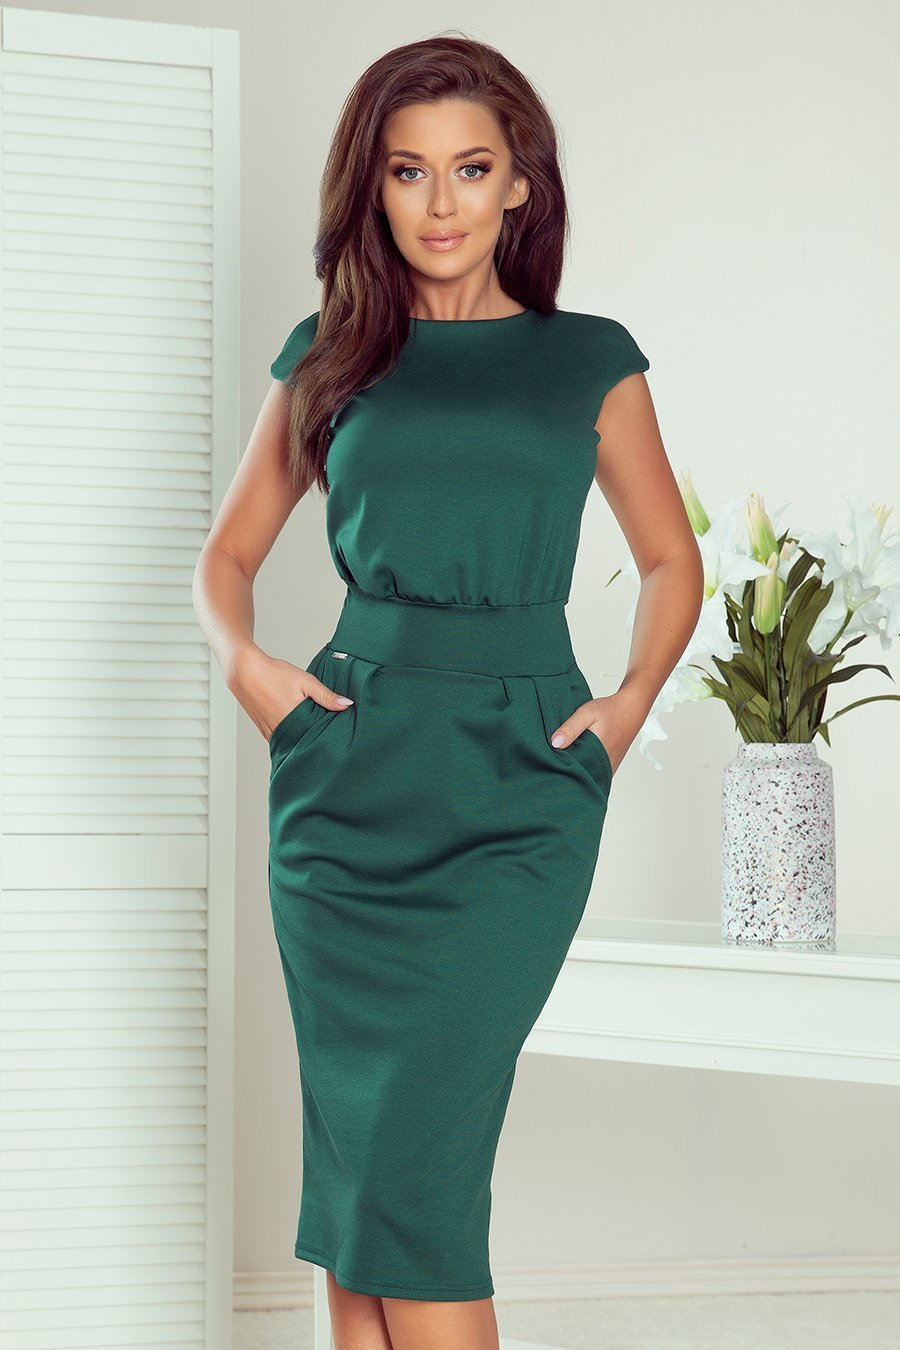 Numoco 144-8 Dress midi SARA - green color - TRINQUETZ